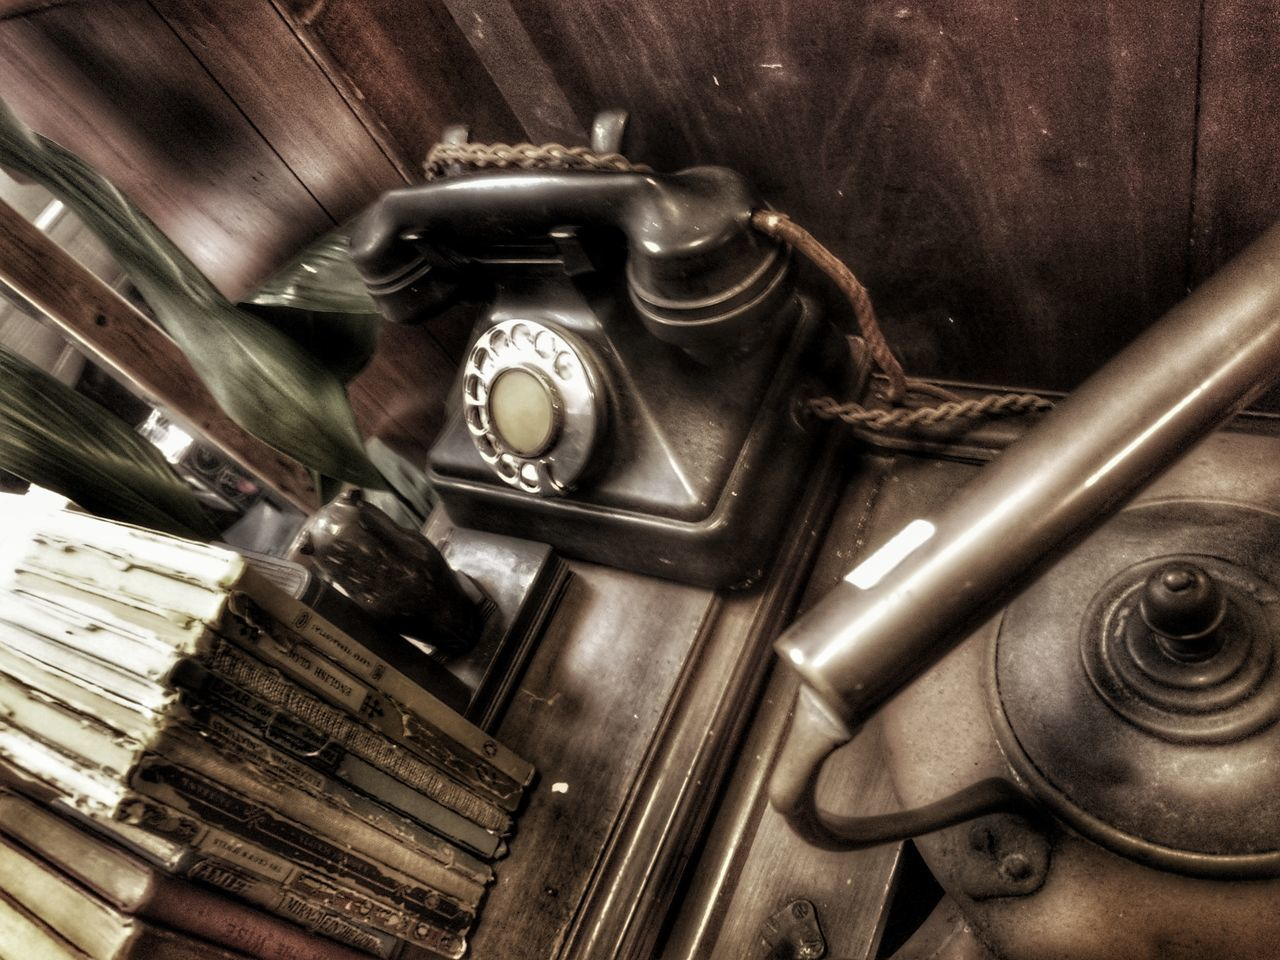 old-fashioned, retro styled, antique, time, rotary phone, vintage, clock, communication, indoors, history, telephone, technology, no people, telephone receiver, close-up, clock face, day, minute hand